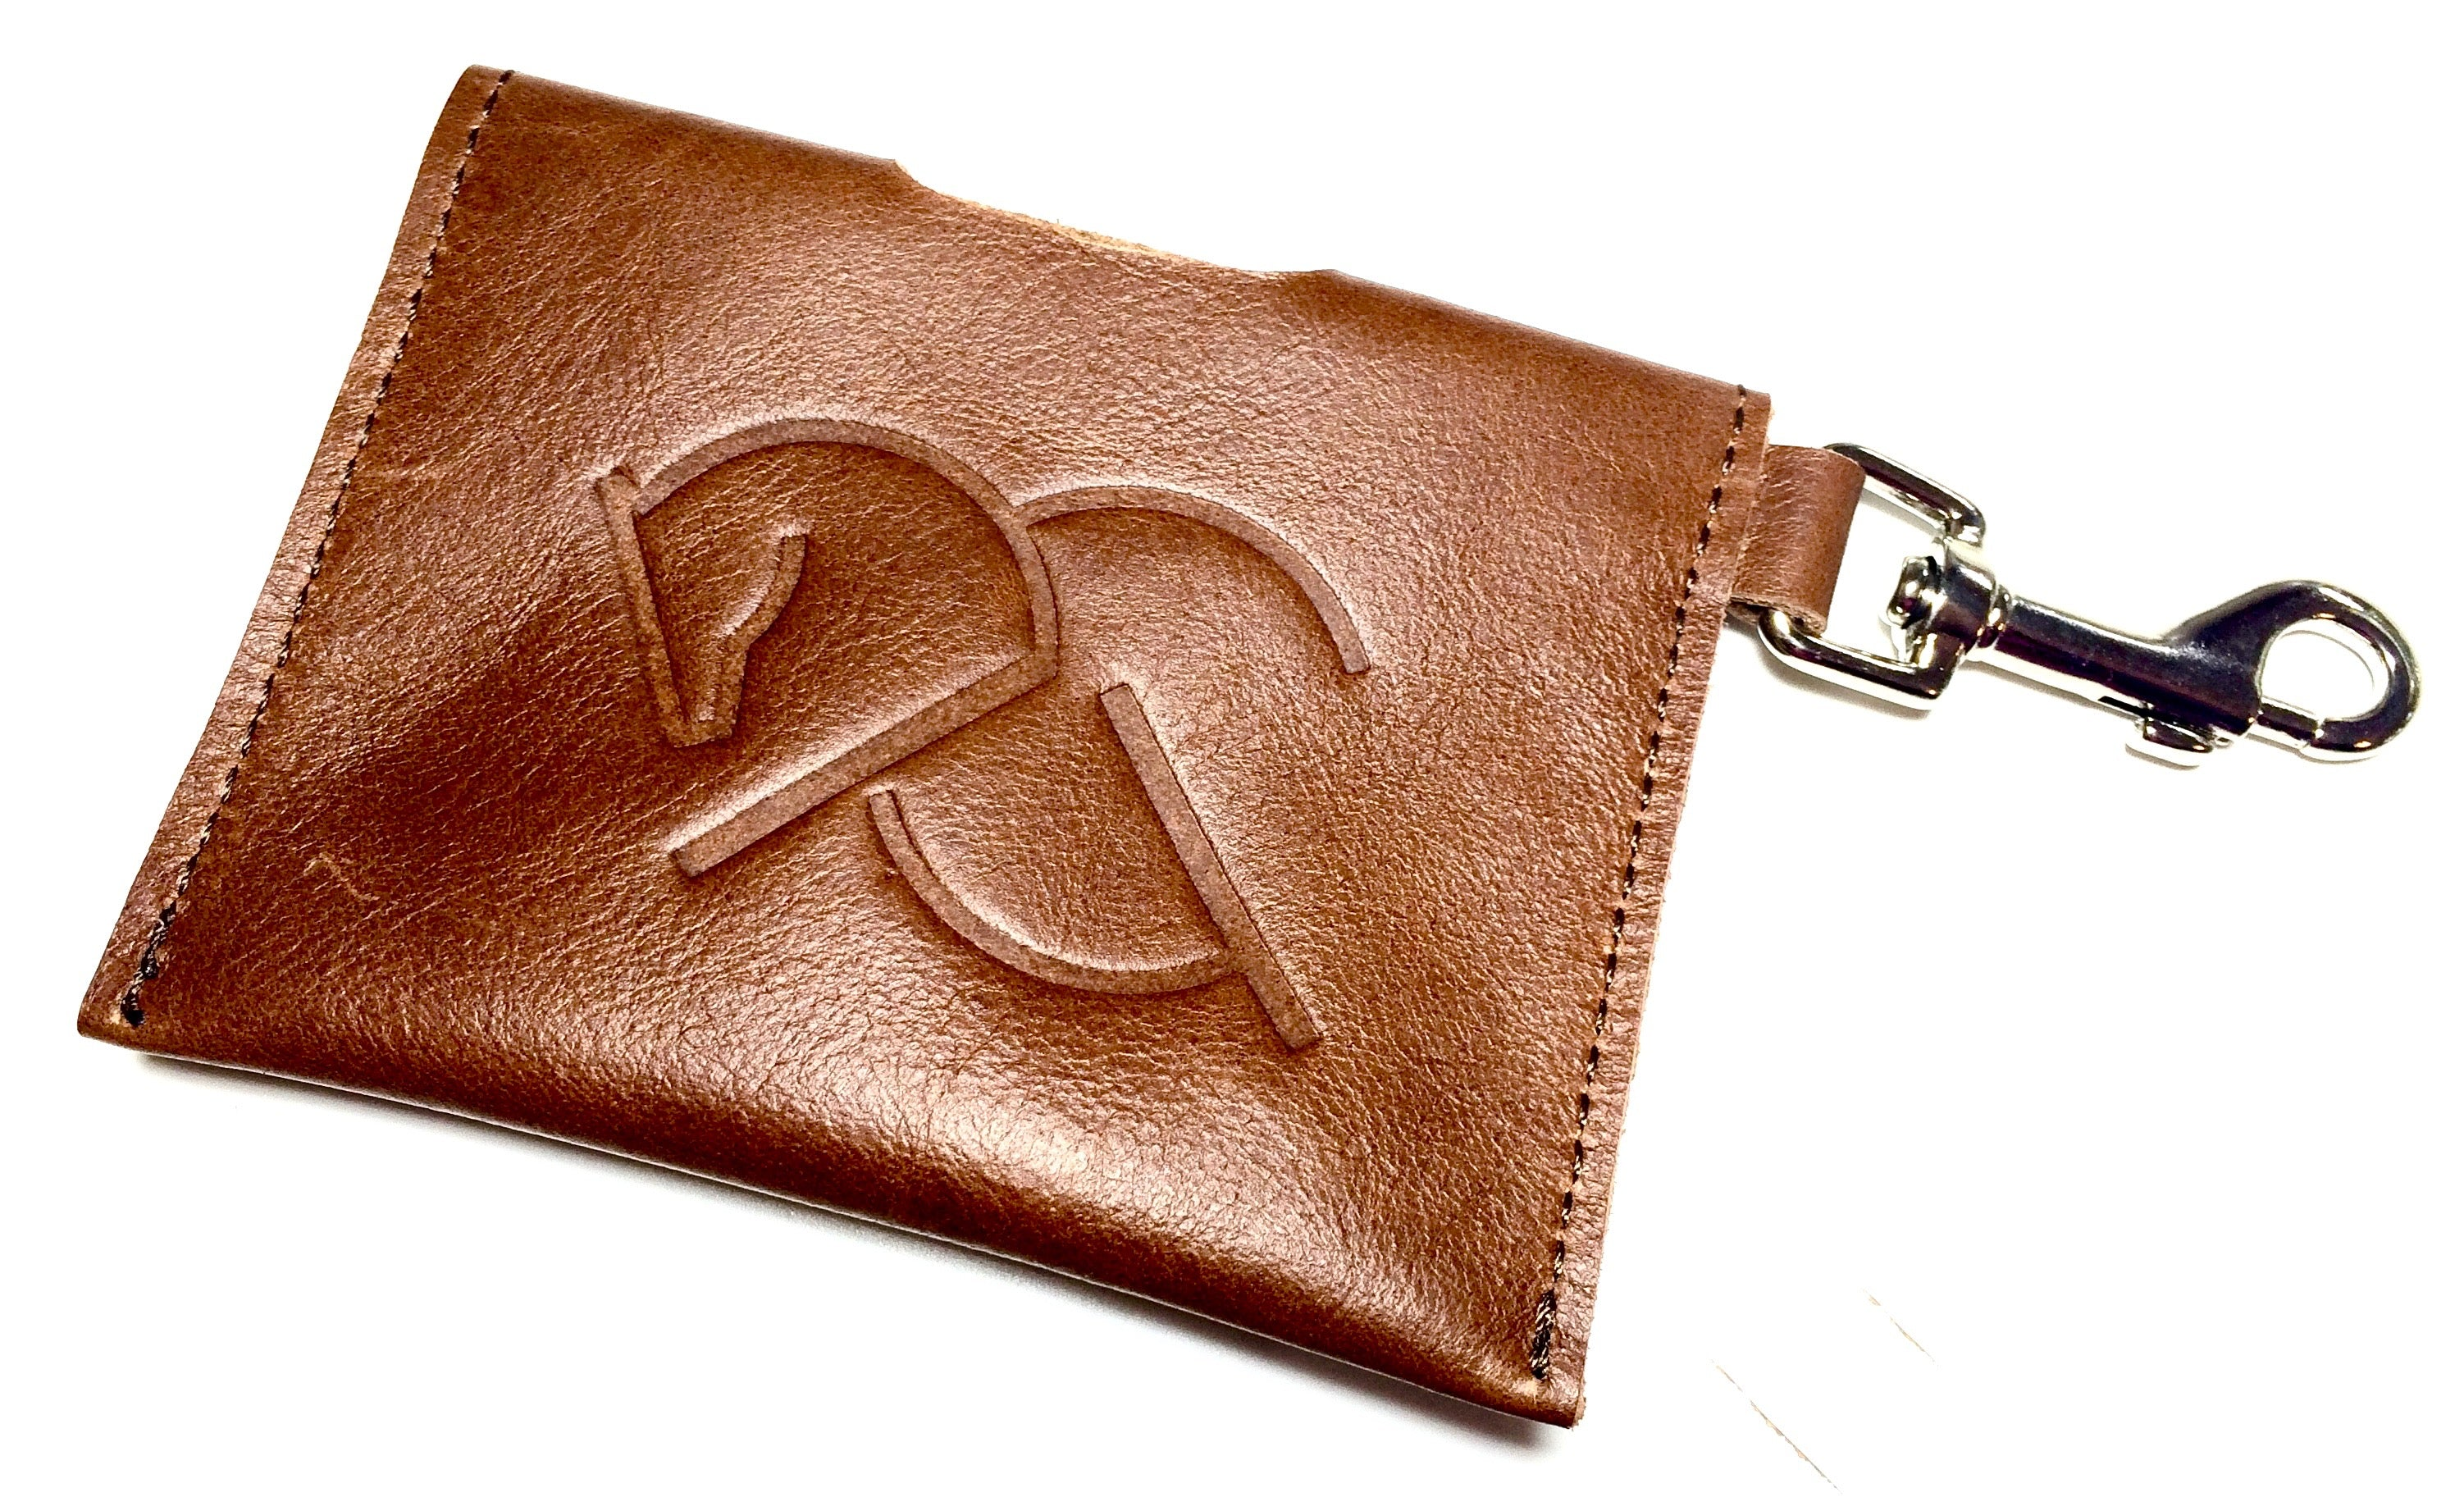 ACG CARD HOLDER in red dun, Leather Card Holder - AtelierCG™